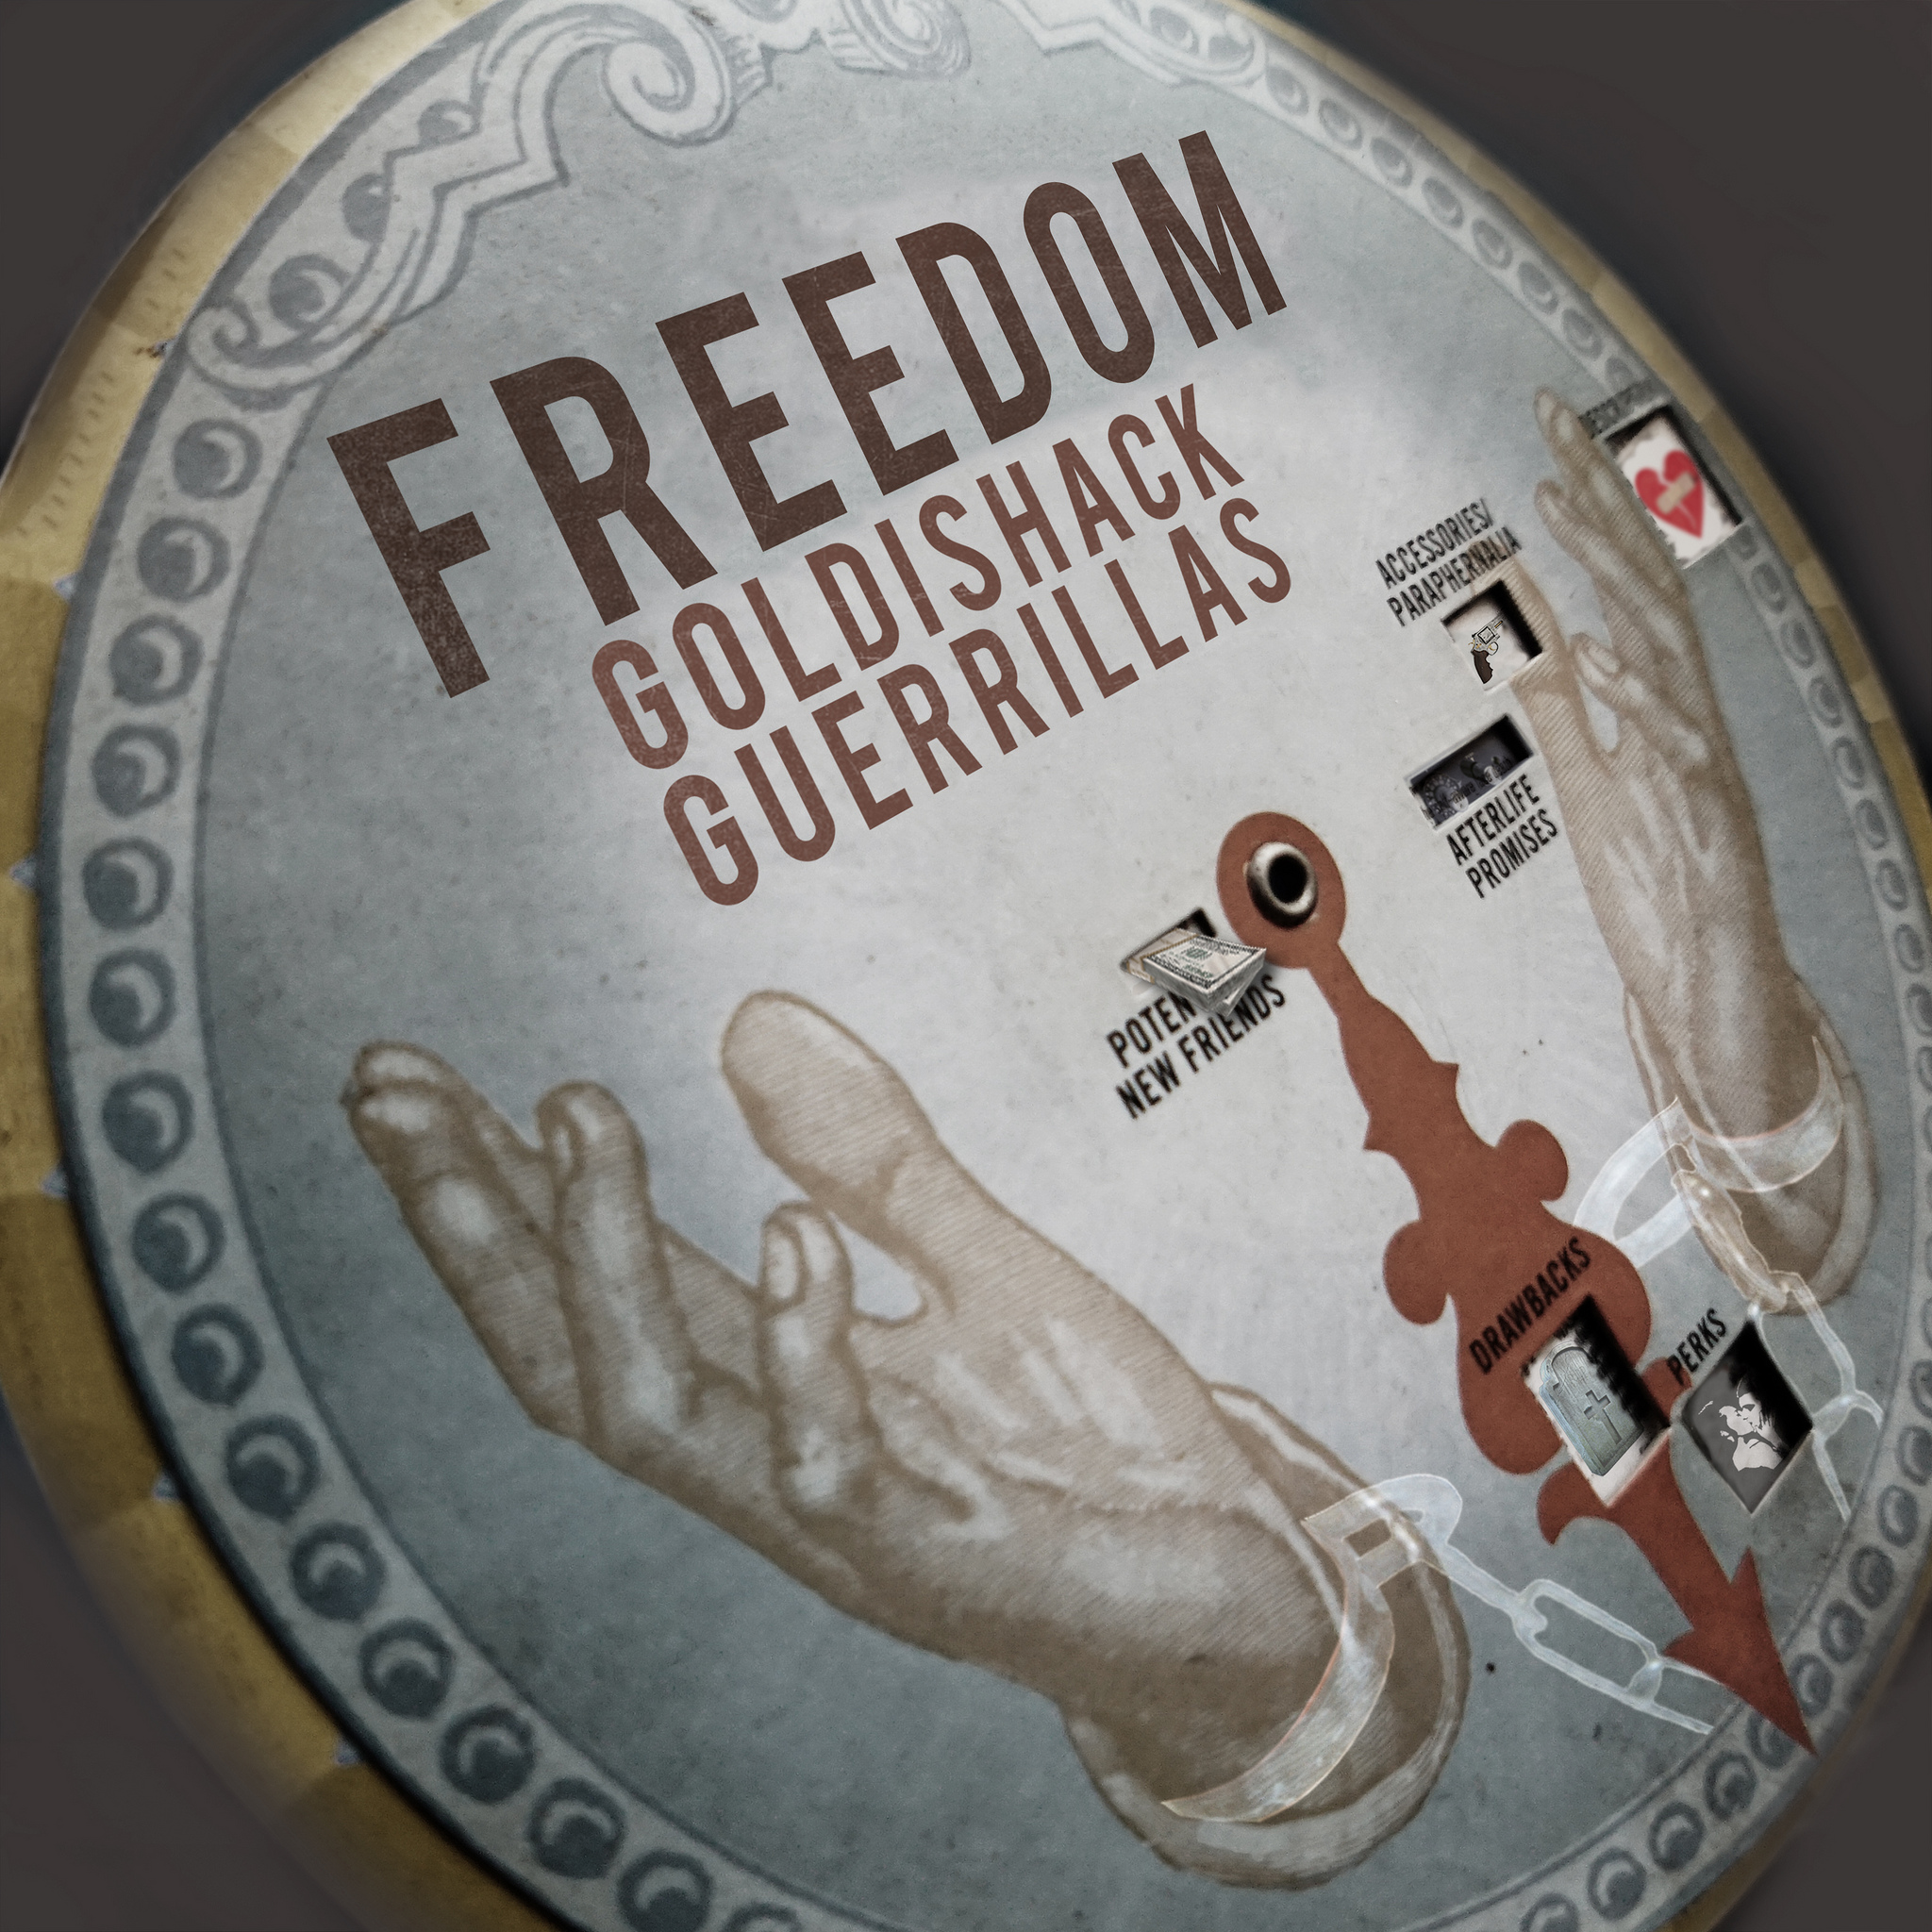 GOLDISHACK GUERRILLAS freedom cover